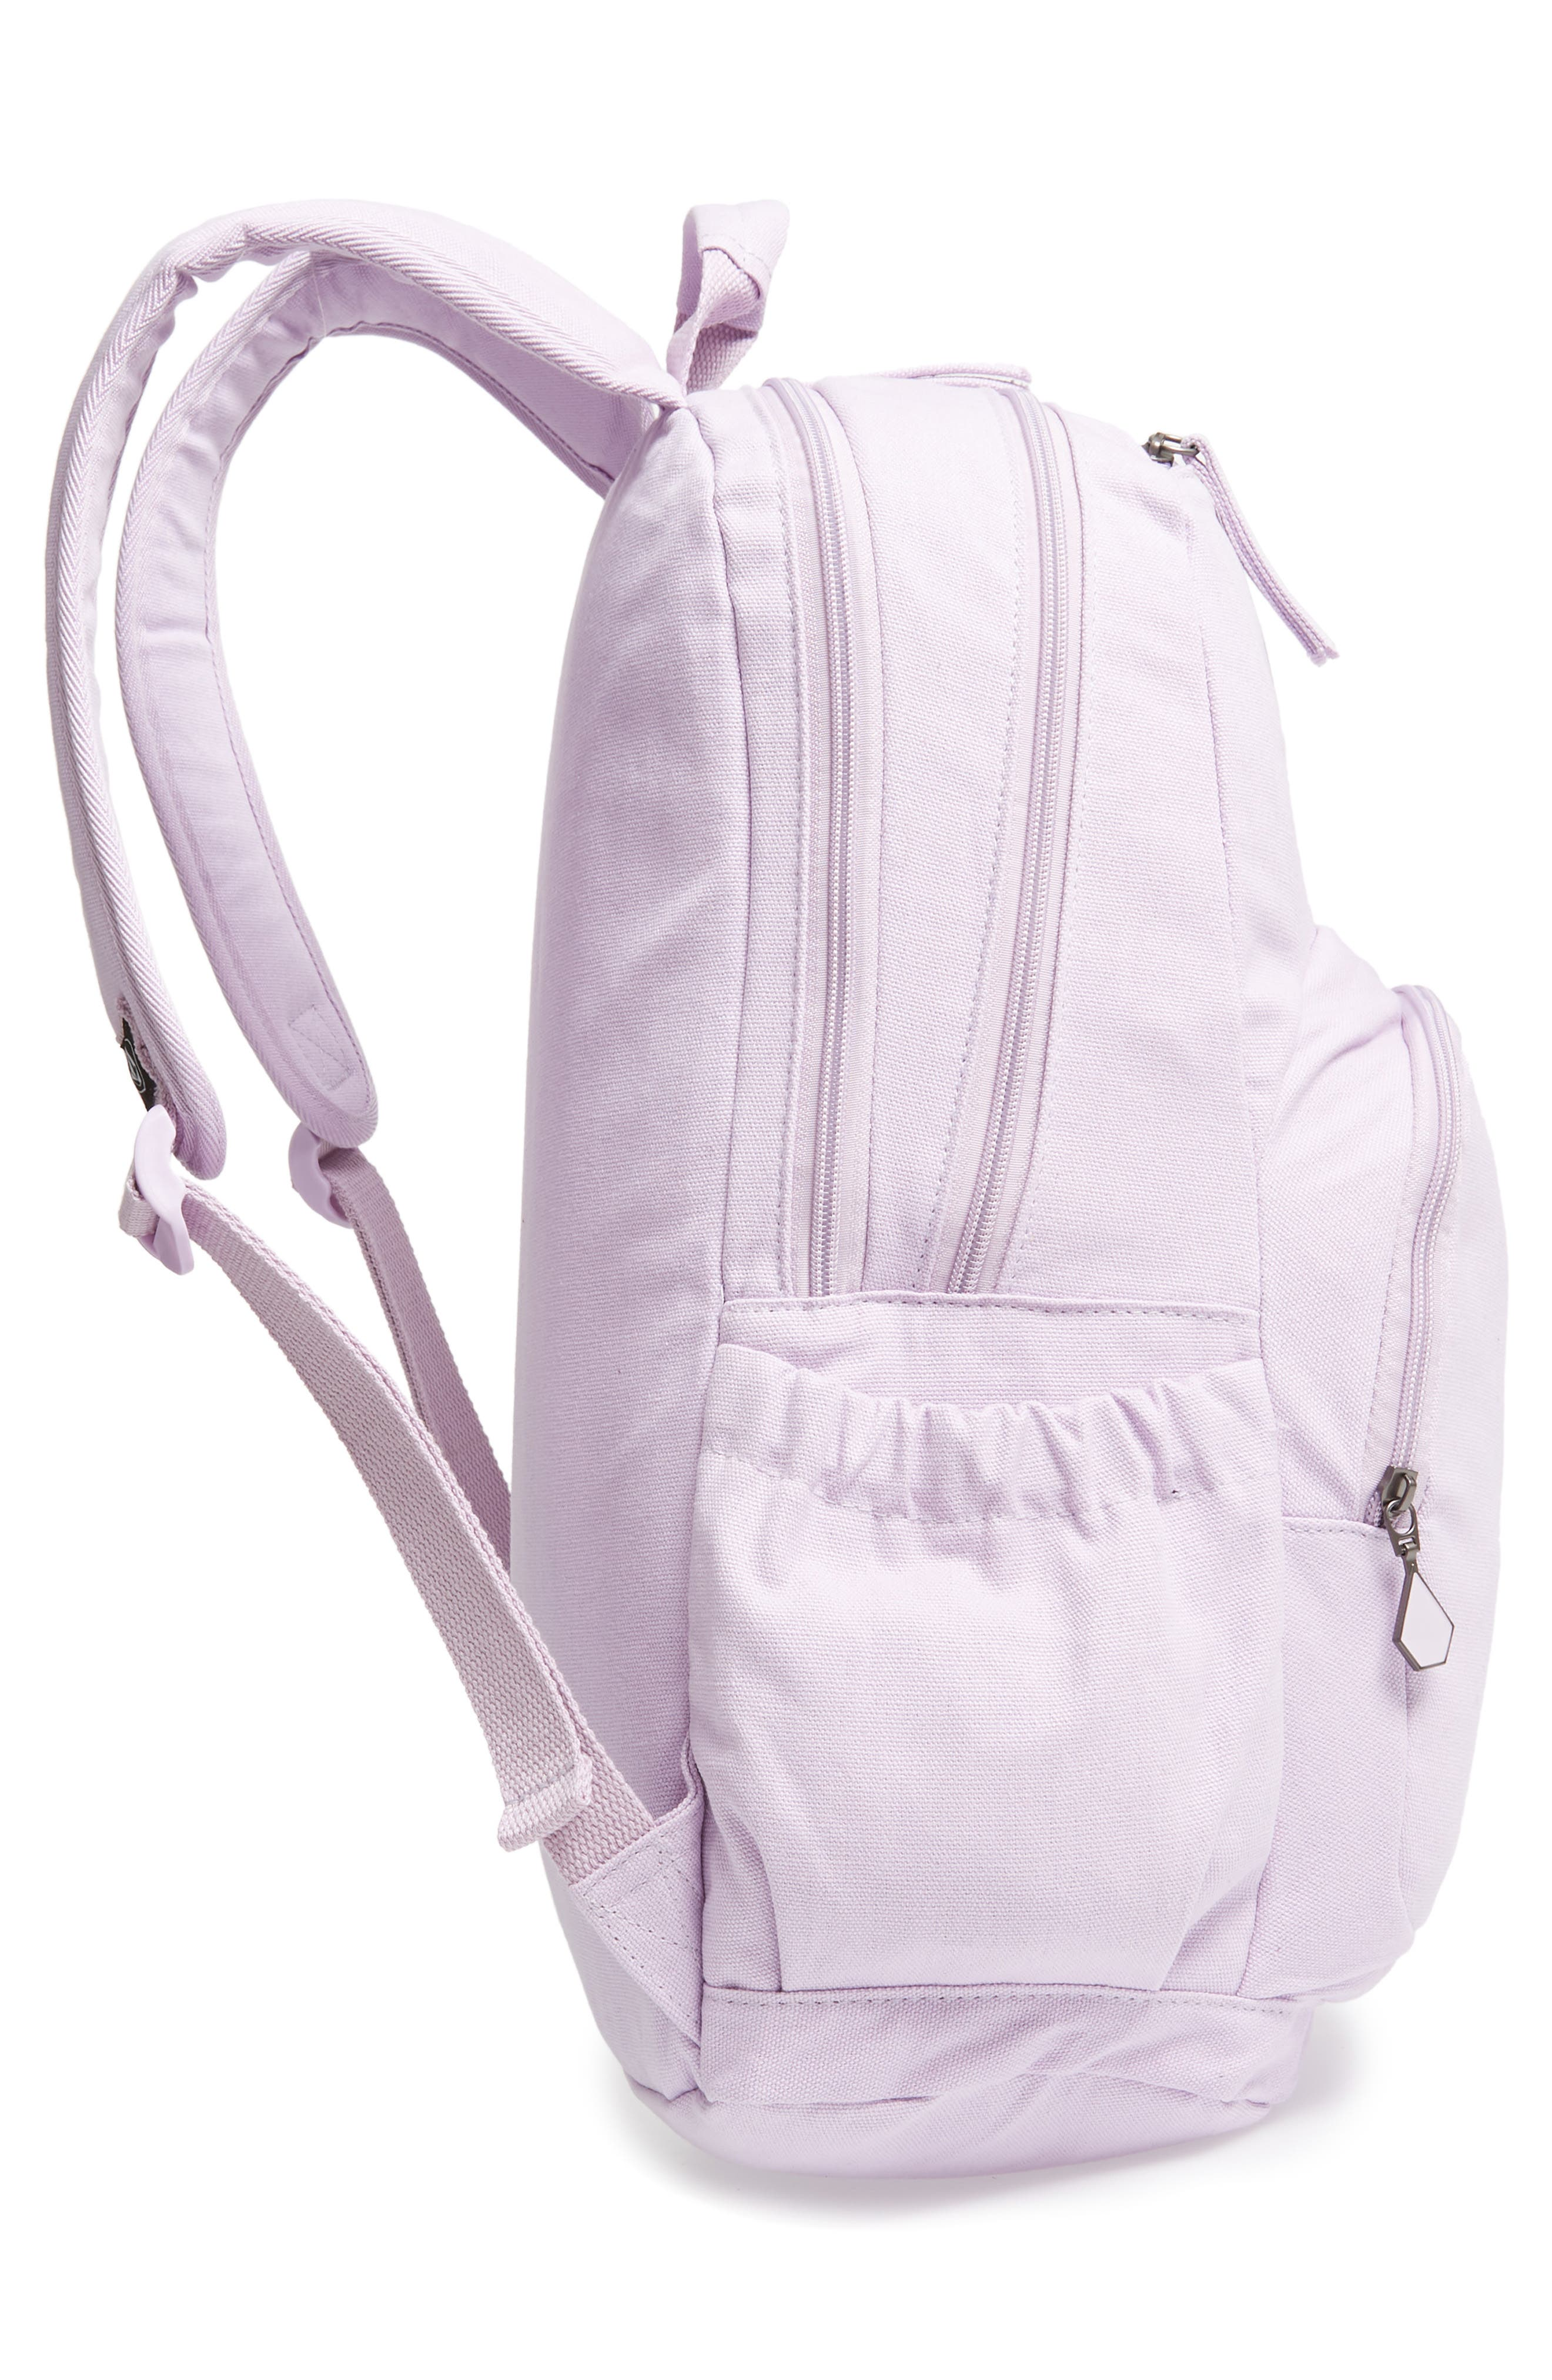 Field Trip Canvas Backpack,                             Alternate thumbnail 5, color,                             500